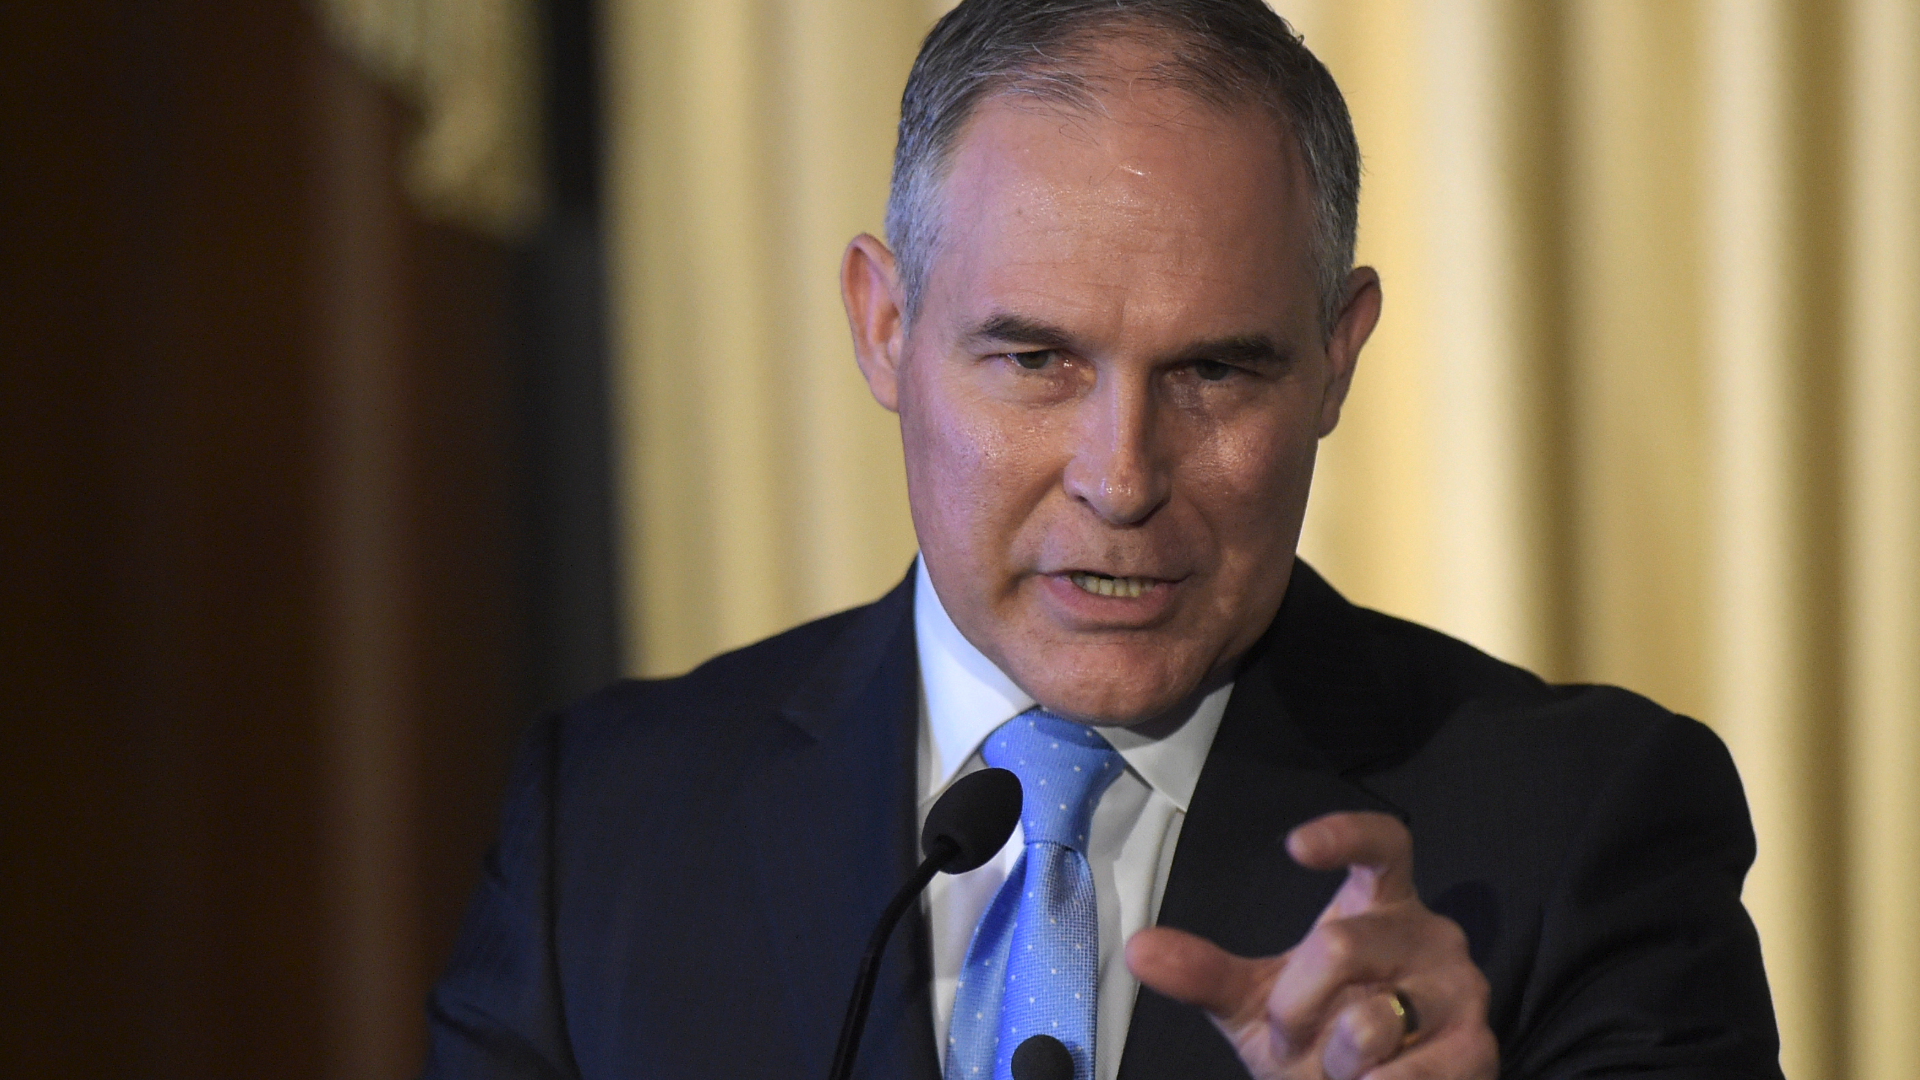 EPA chief pushing governmentwide effort to question climate change science